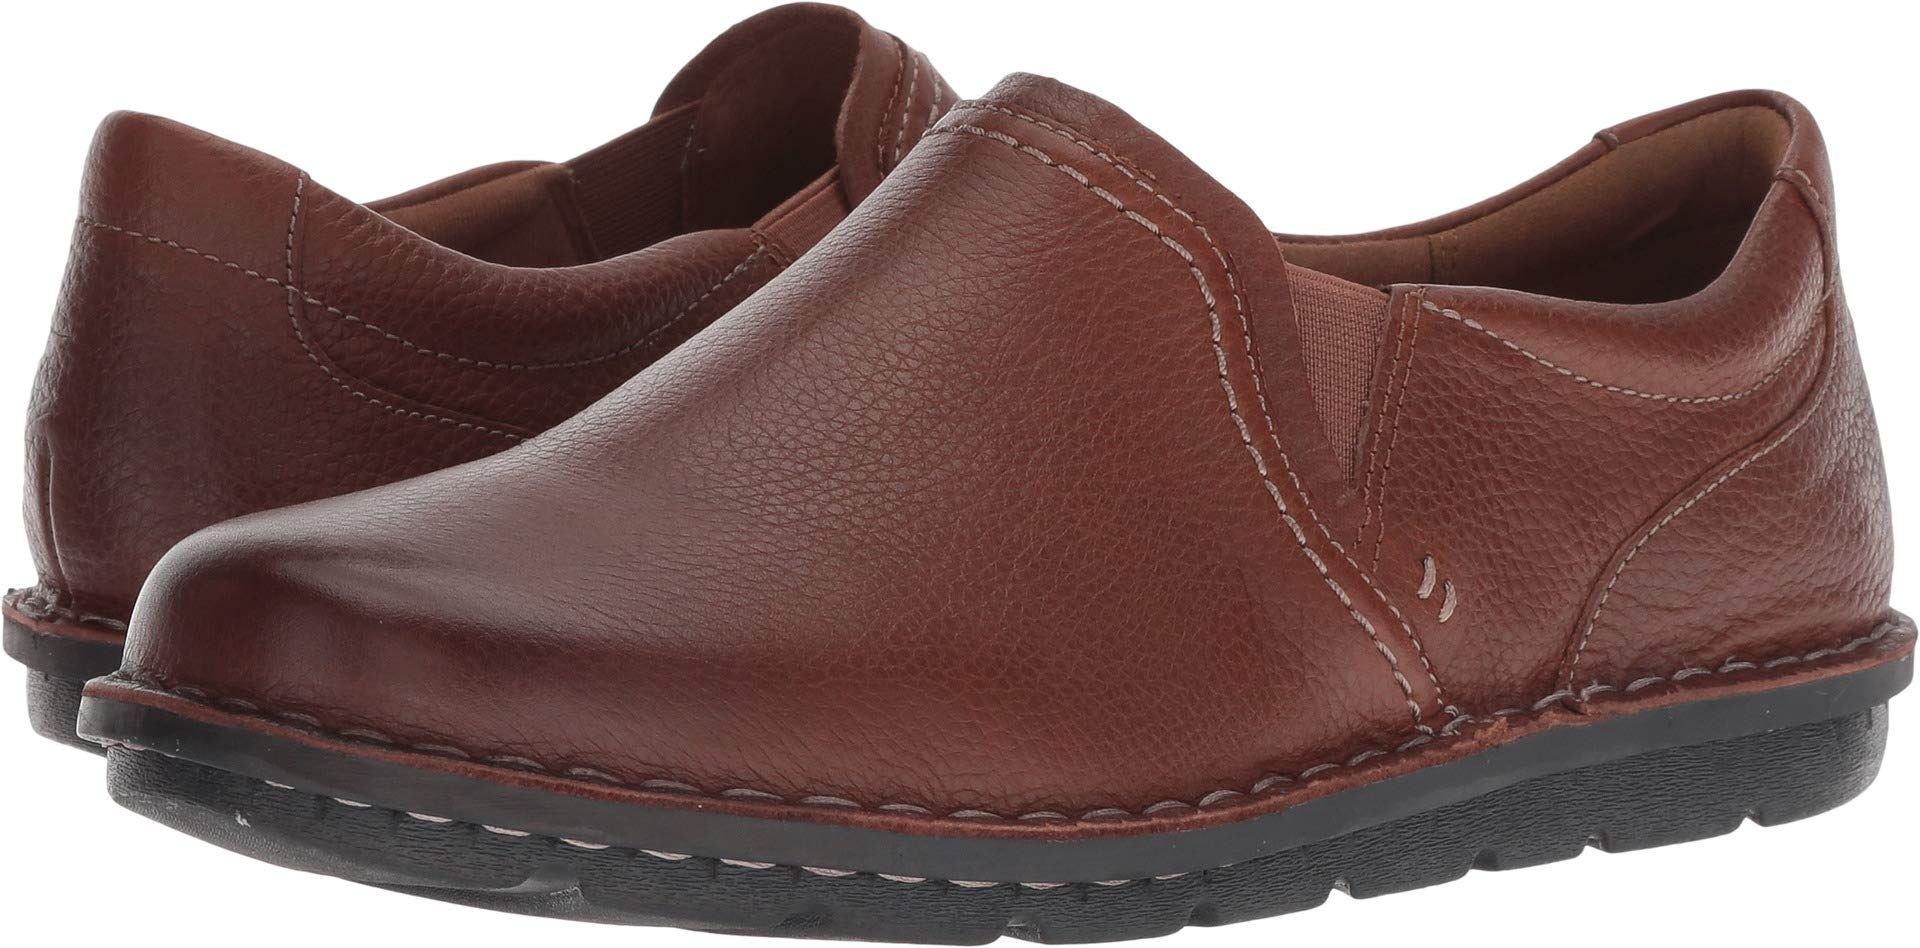 CLARKS Women's Janice Barrie Loafer, Dark tan Leather, 100 W US